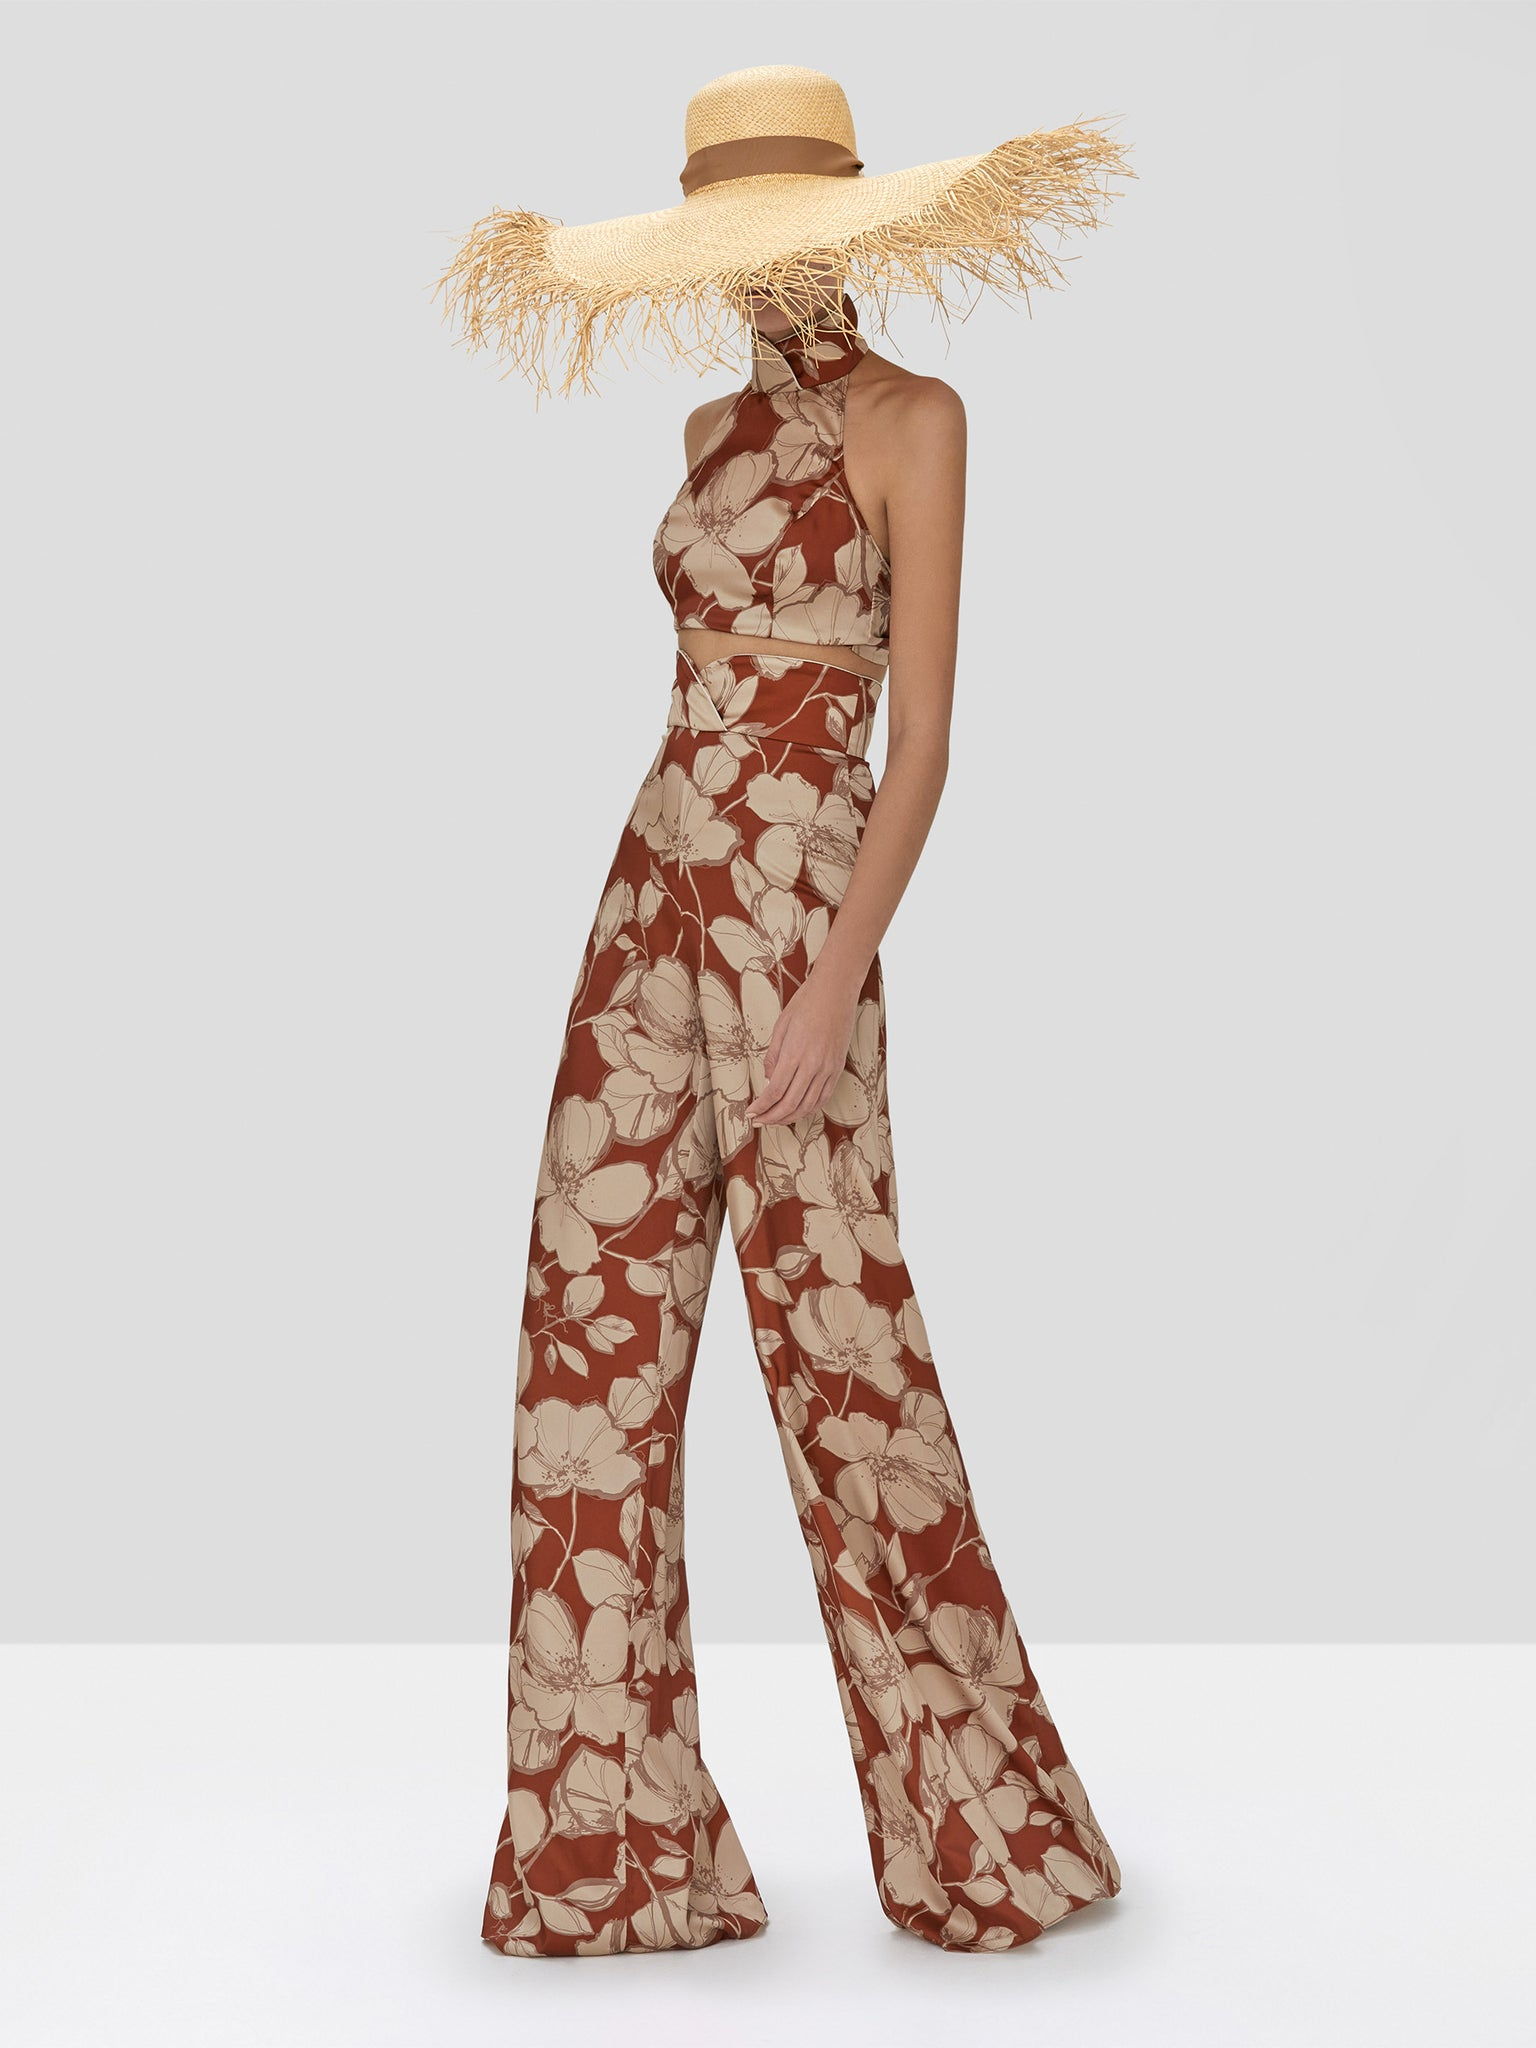 Alexis Bala Crop Top and Haruna Pant in Sand Floral from the Spring Summer 2020 Collection